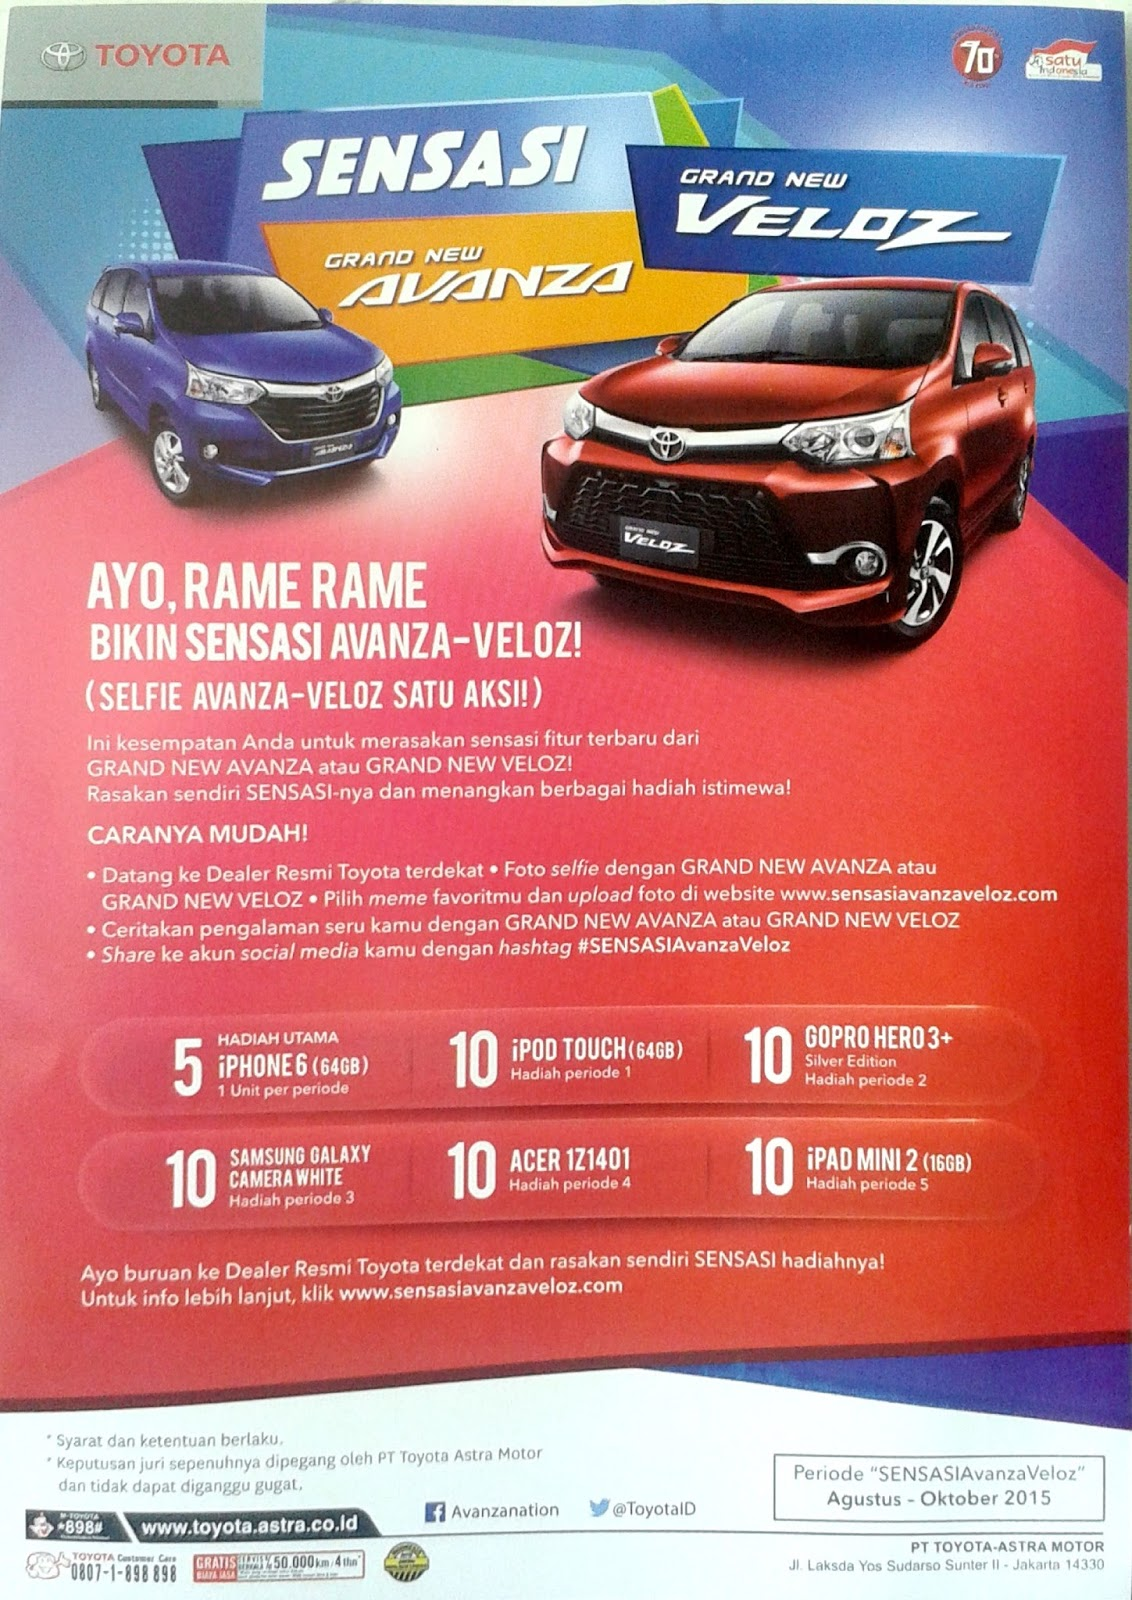 harga grand new avanza di makassar e std sensasi and veloz toyota auto 2000